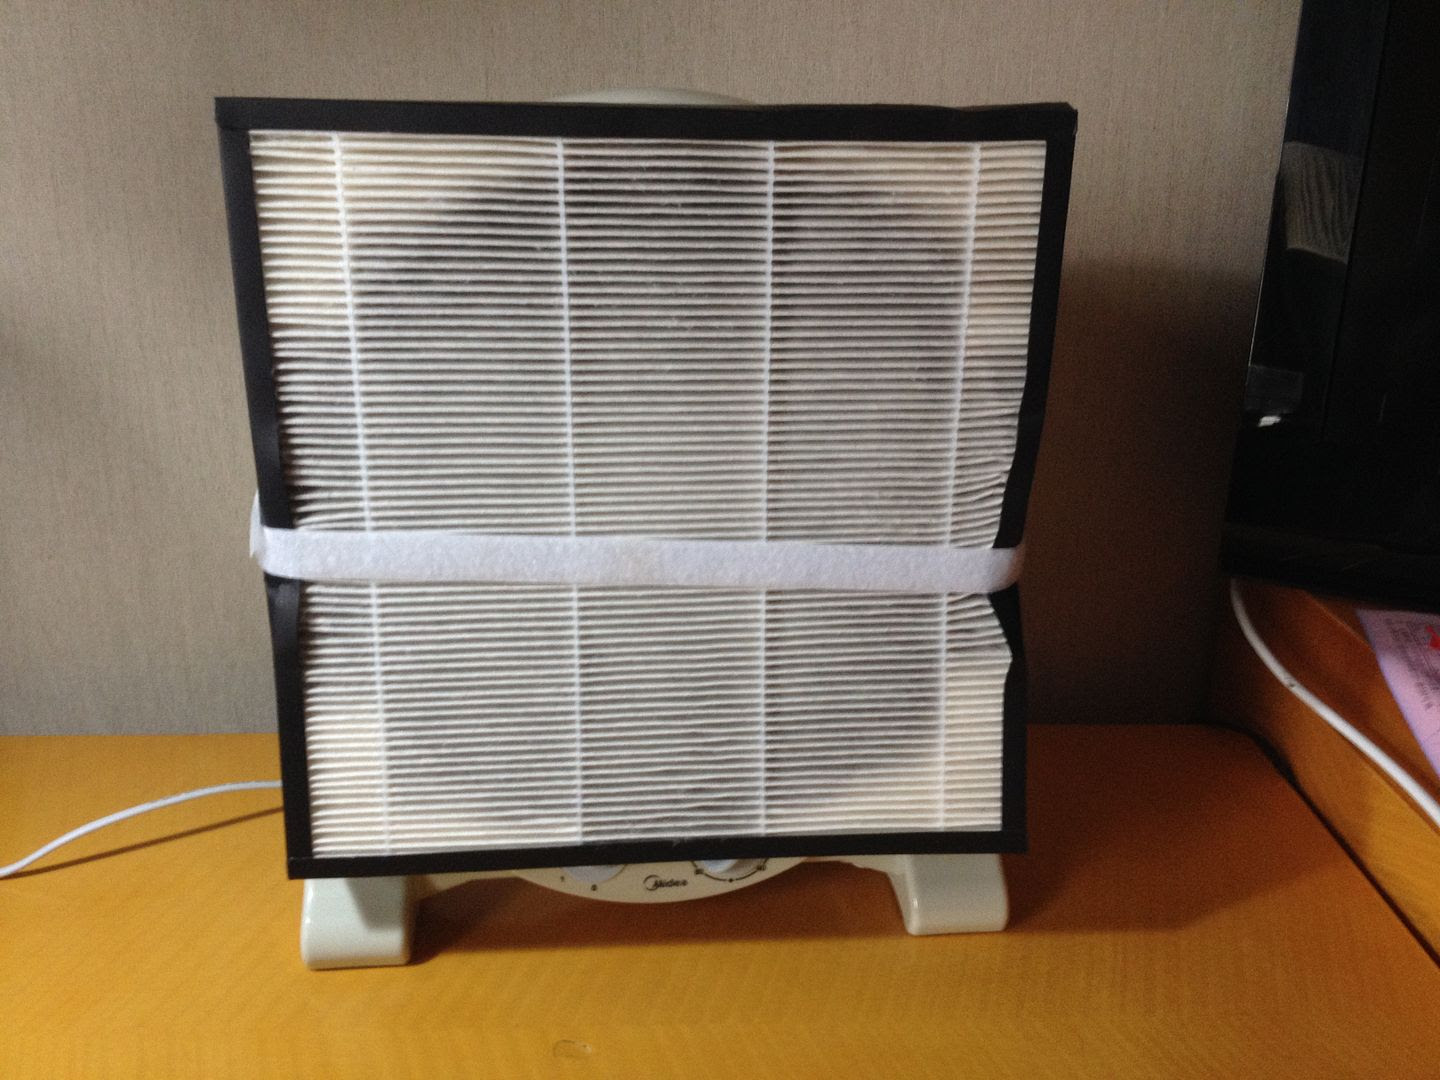 Here's our DIY Smart Air Filter photo 2013-12-09135129_zpse887dd7d.jpg